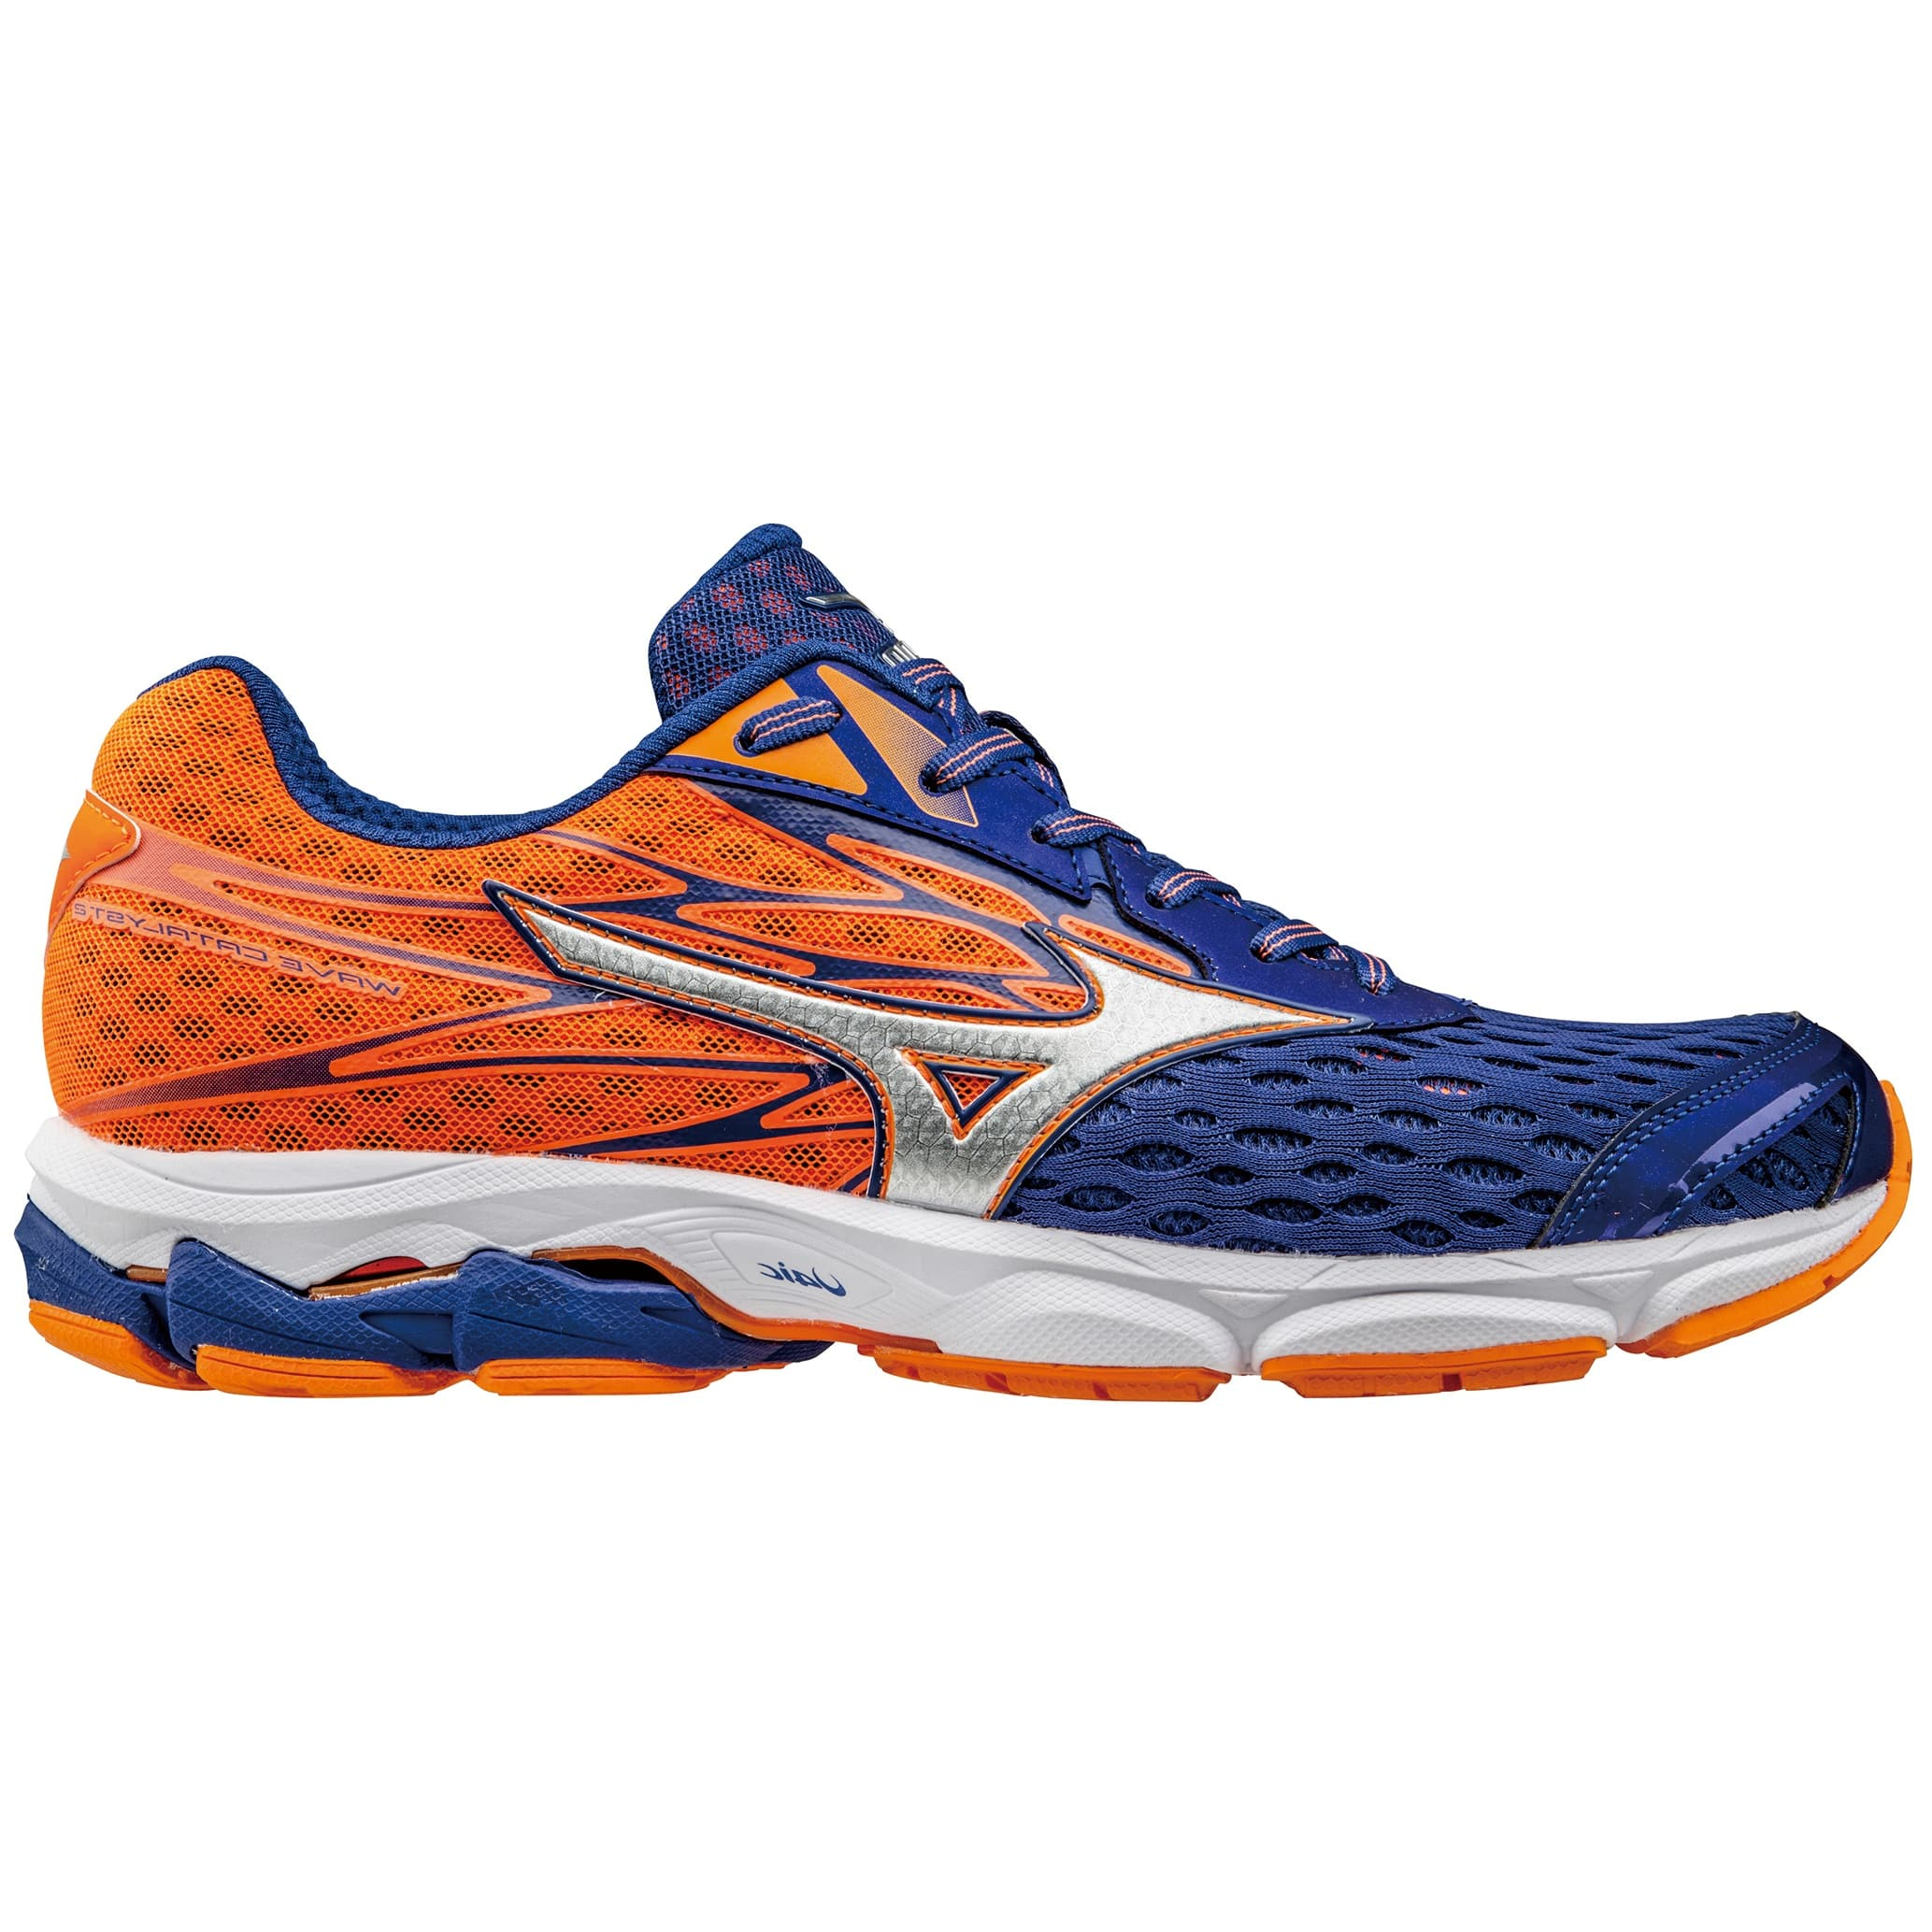 Buy Mizuno Wave Catalyst 2 from Outnorth